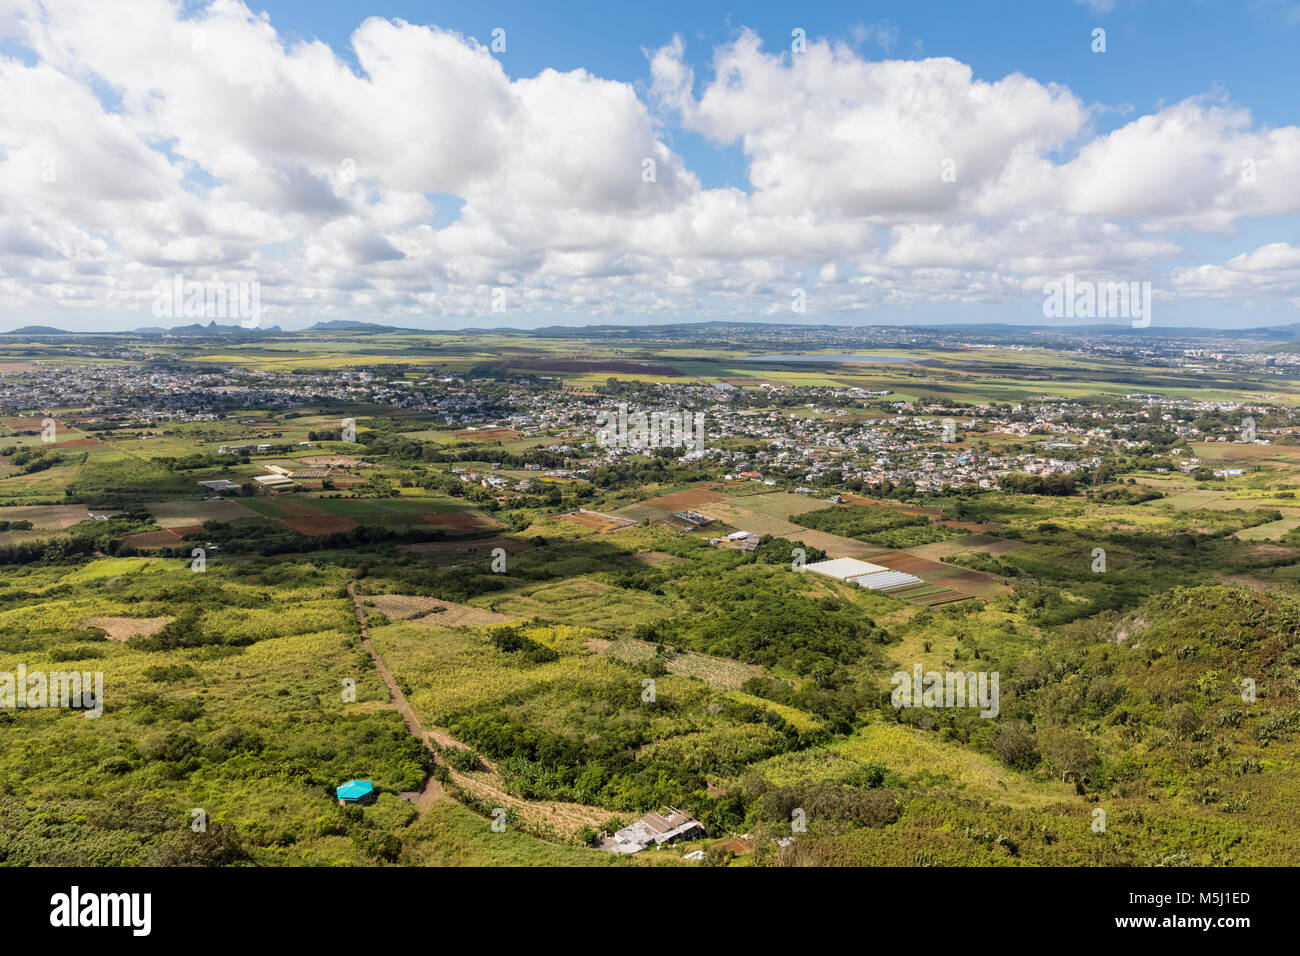 Mauritius, View of St. Pierre - Stock Image